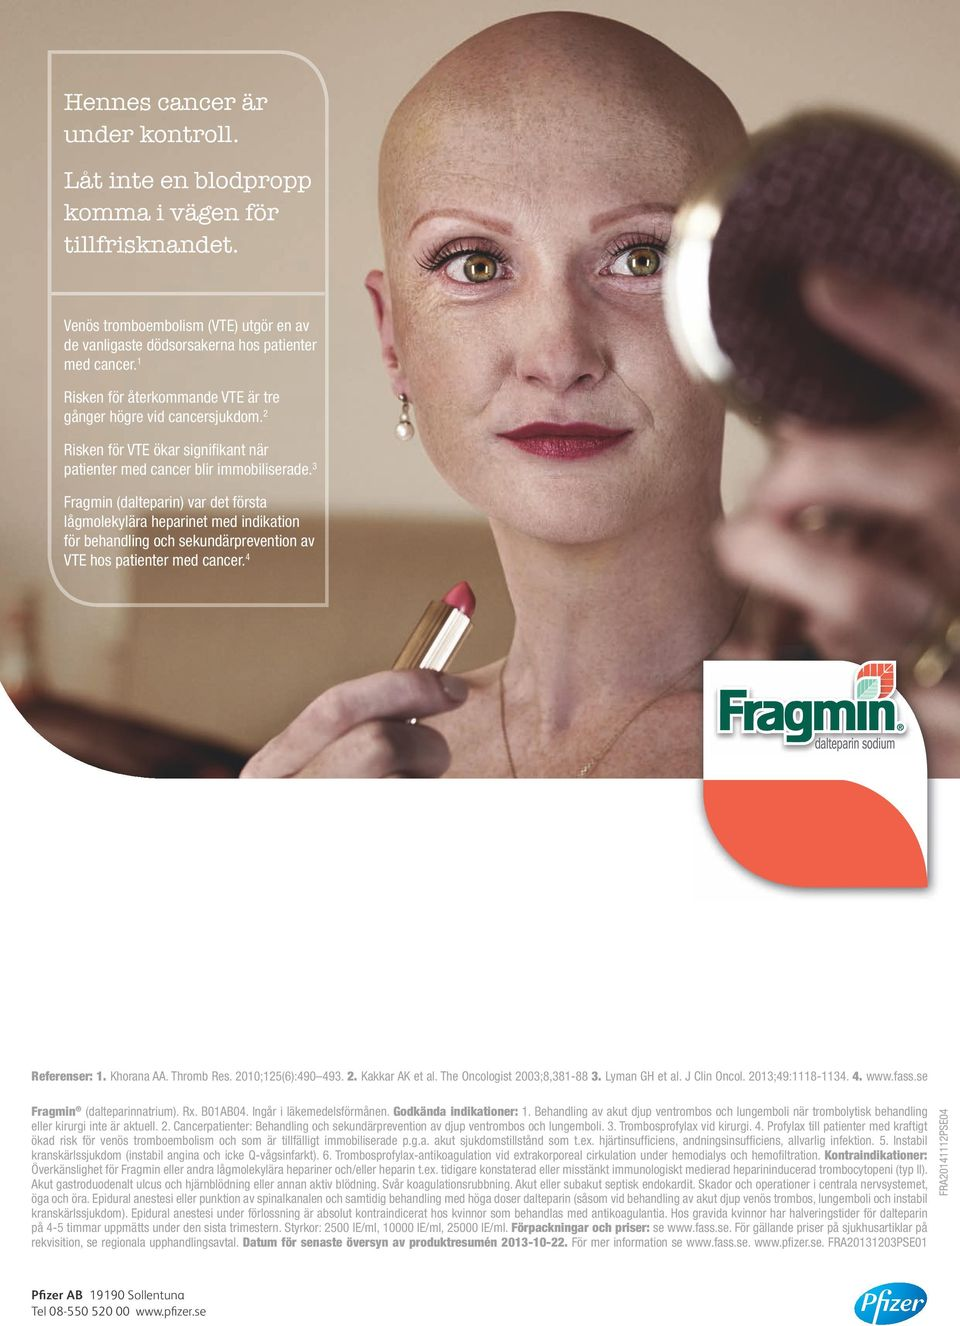 3 Fragmin (dalteparin) var det första lågmolekylära heparinet med indikation för behandling och sekundärprevention av VTE hos patienter med cancer. 4 Referenser: 1. Khorana AA. Thromb Res.